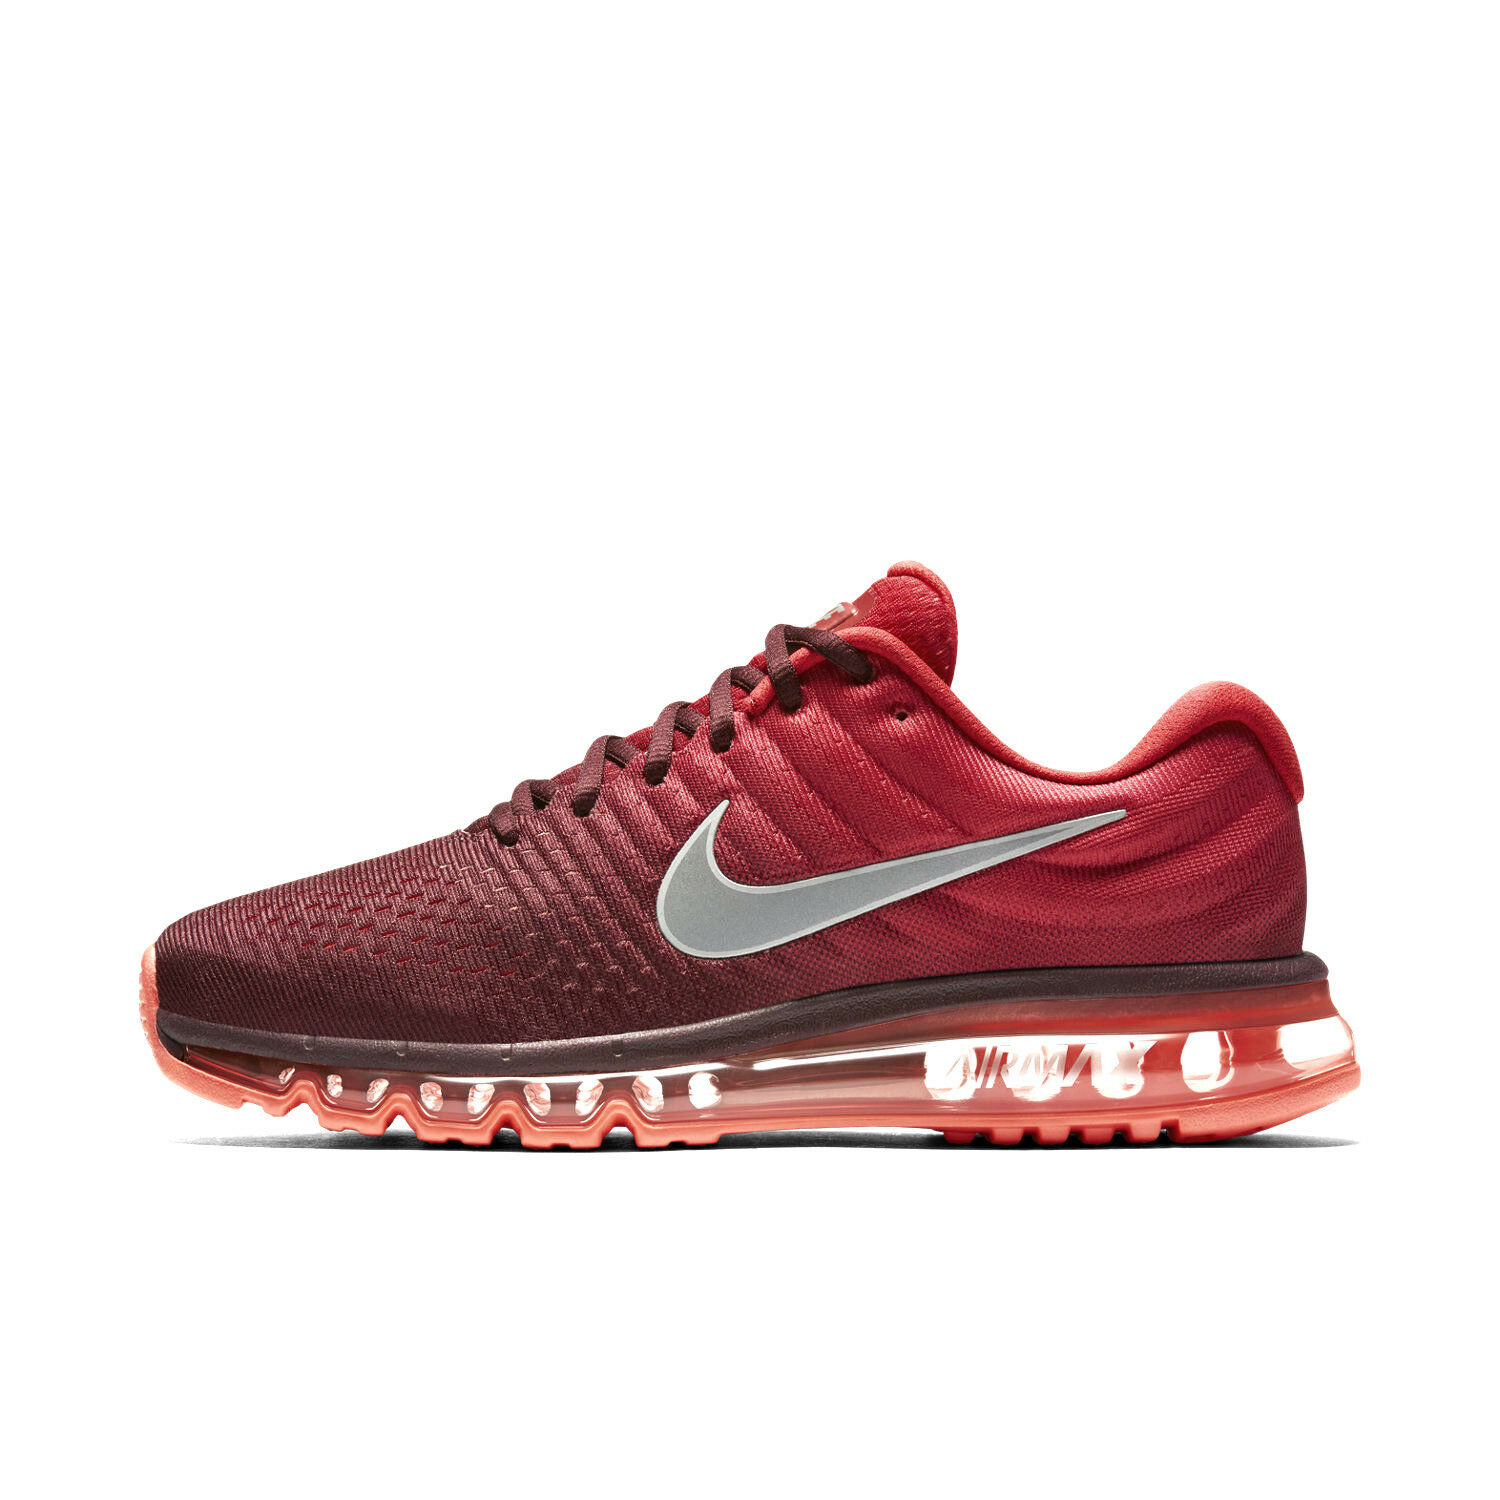 Nike Air Max 2017 Men's shoes Sizes 10-13 Night Maroon Gym Red Siver 849559-601